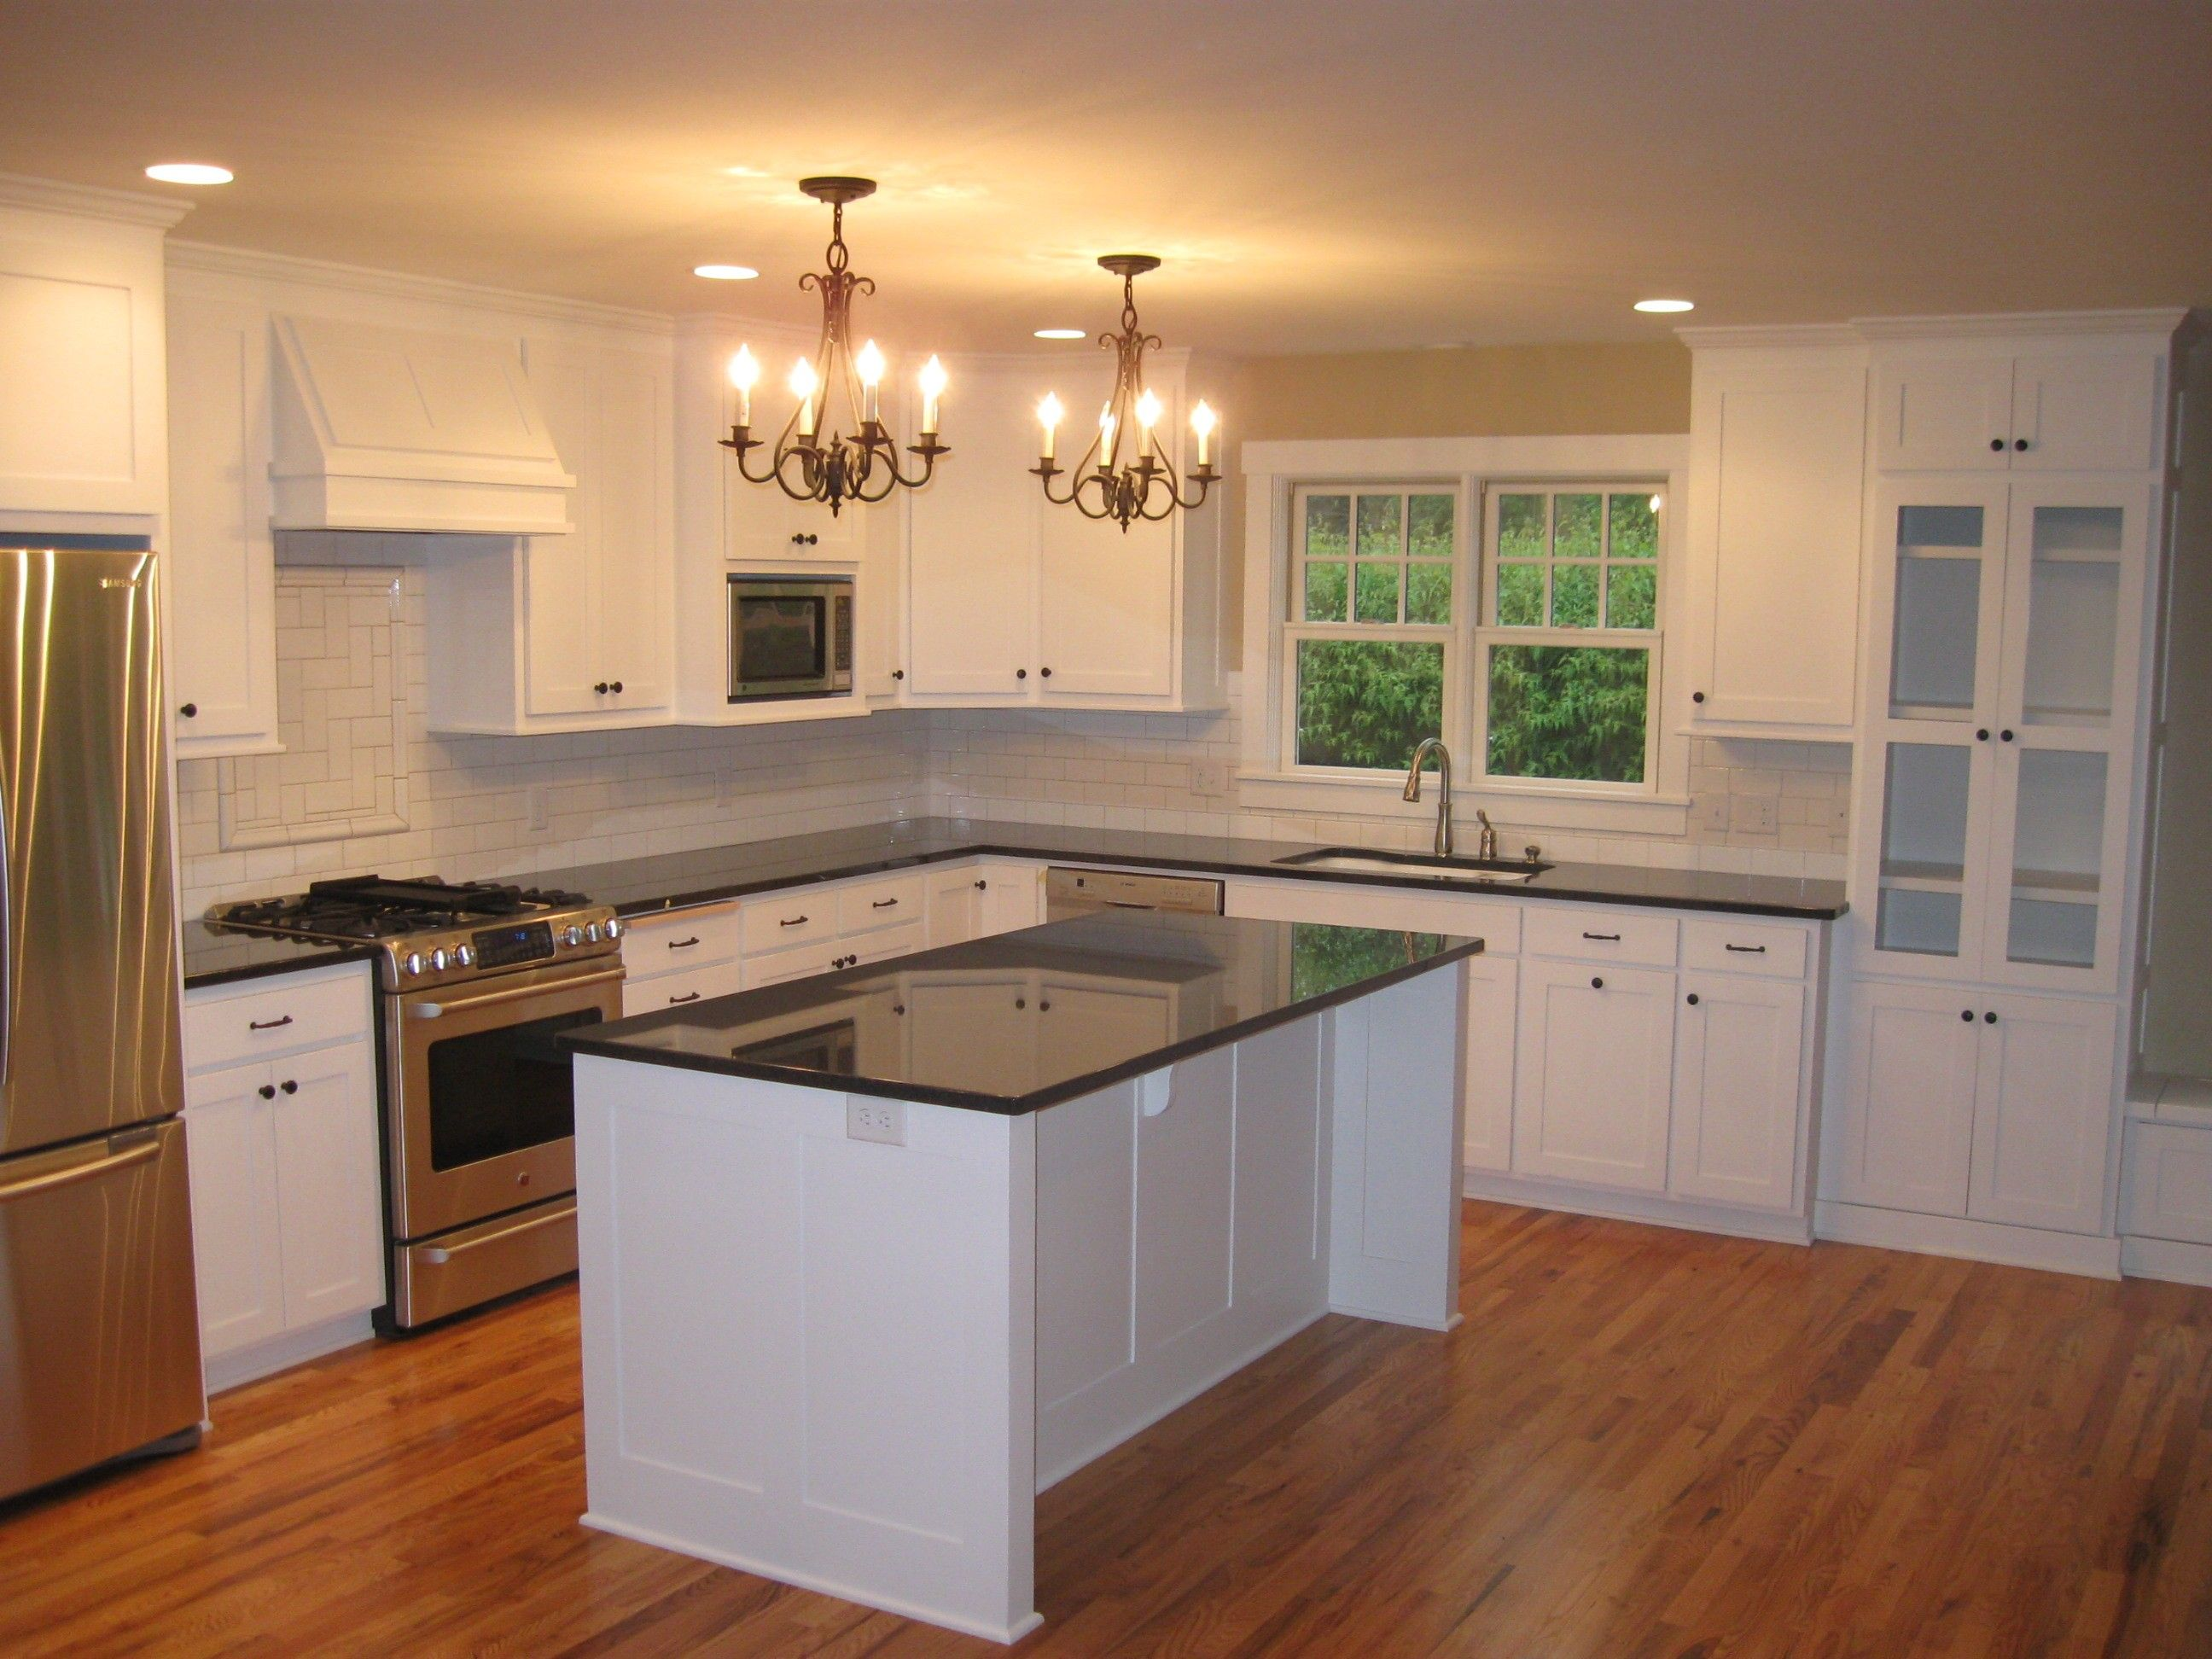 Best Remodel White Kitchen Cabinet Design Ideas With Cool 640 x 480